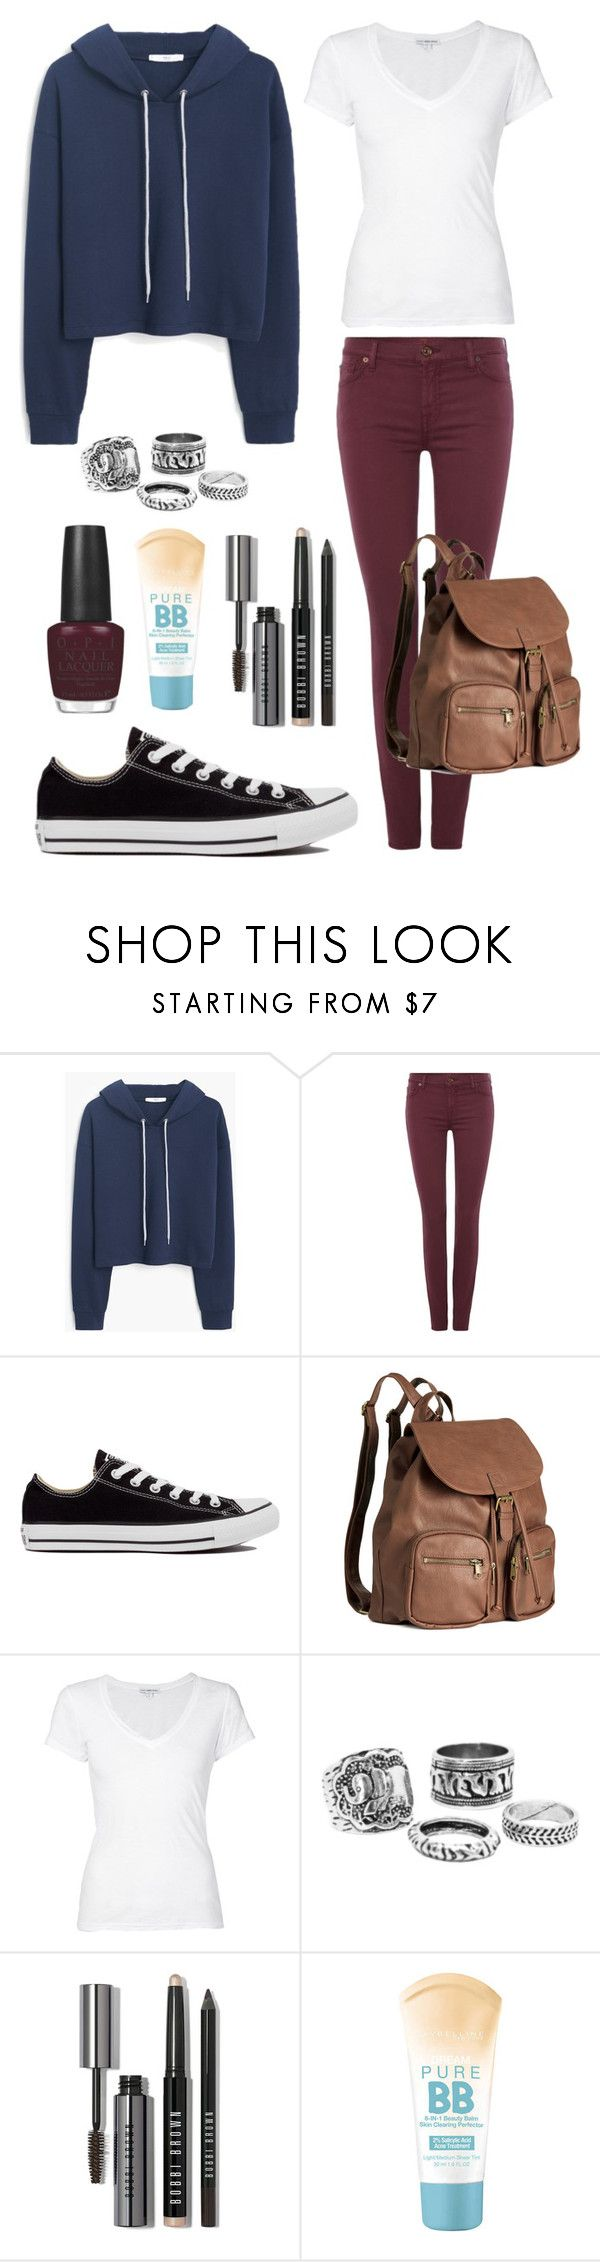 """""""Back to School Outfit"""" by sophiesayshi ❤ liked on Polyvore featuring MANGO, 7 For All Mankind, Converse, H&M, James Perse, Bobbi Brown Cosmetics, Maybelline and OPI"""